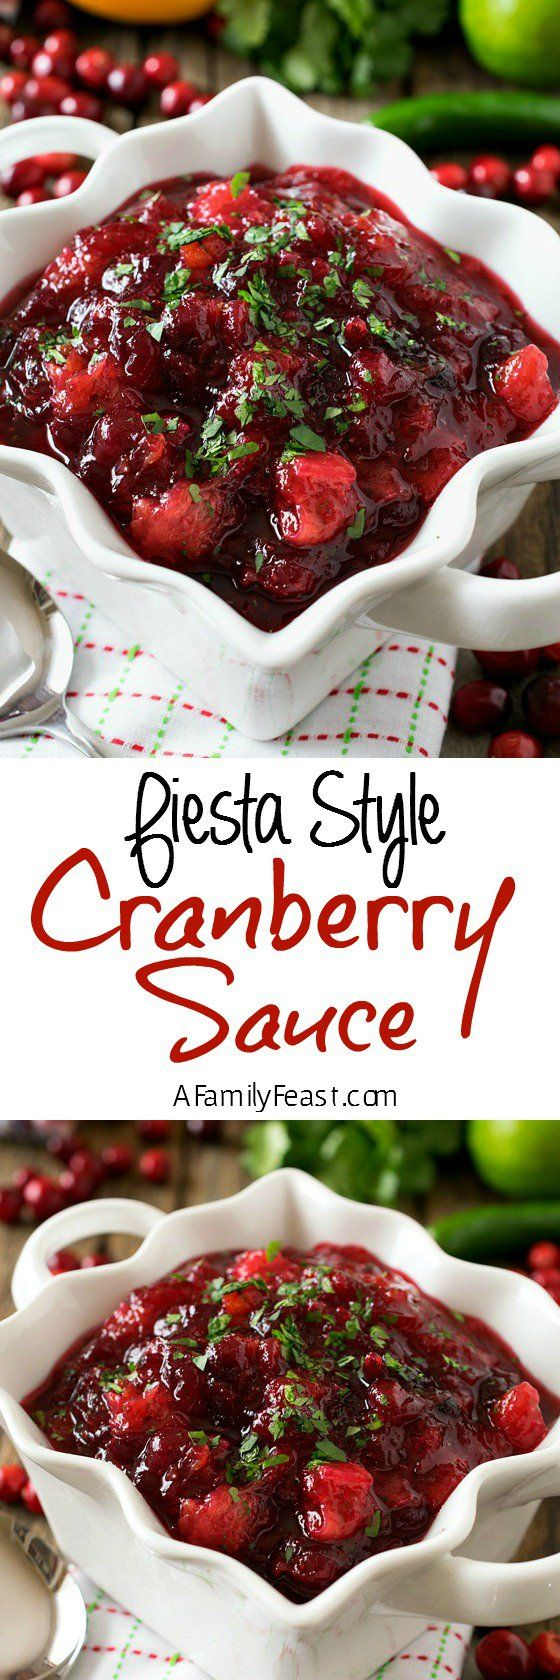 Fiesta Style Cranberry Sauce - An easy cranberry sauce with unexpected and fantastic flavor!